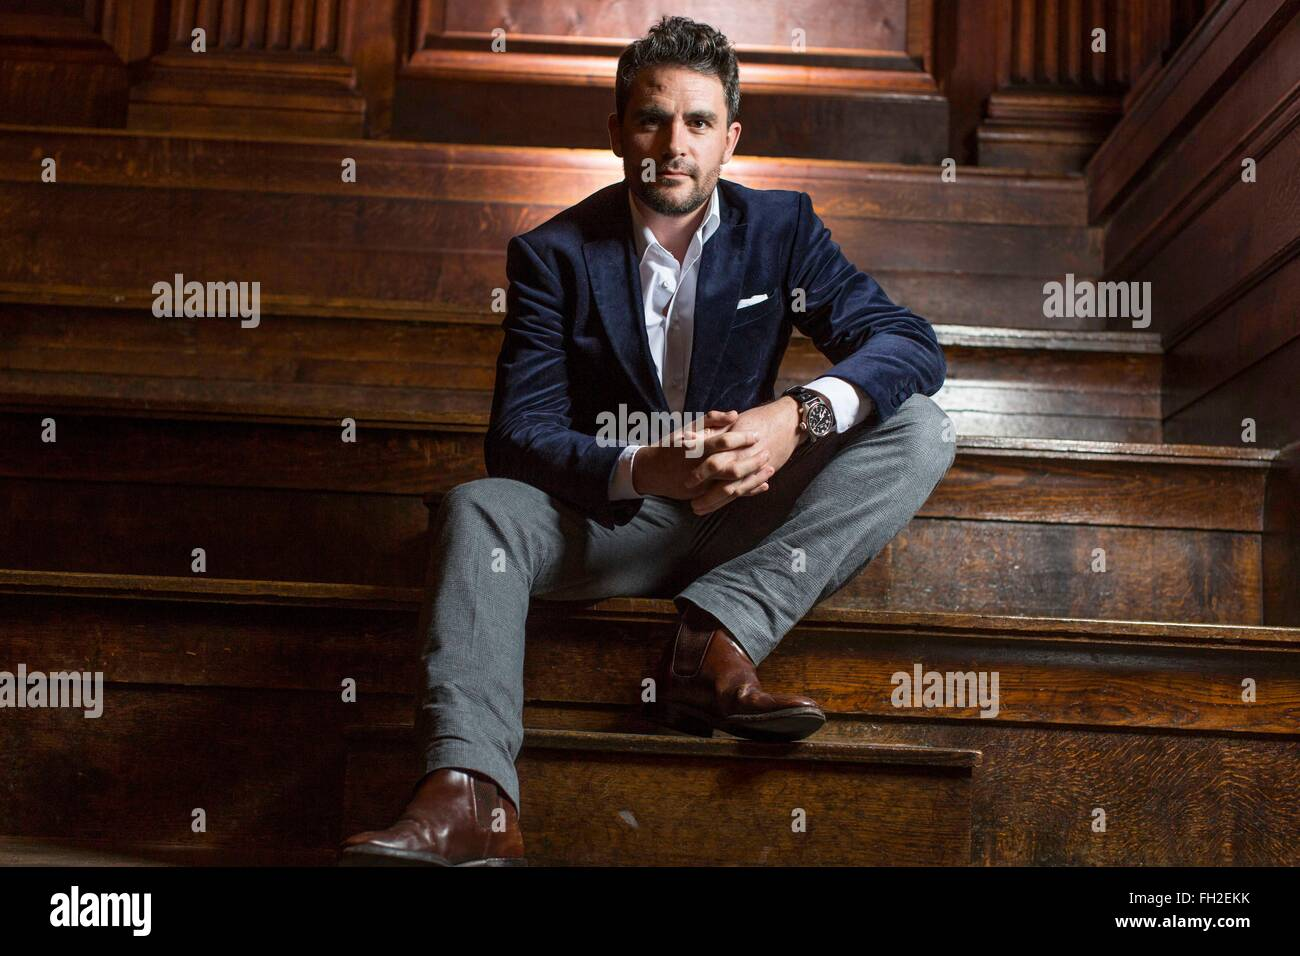 Portrait of explorer and TV presenter Levison Wood - Stock Image